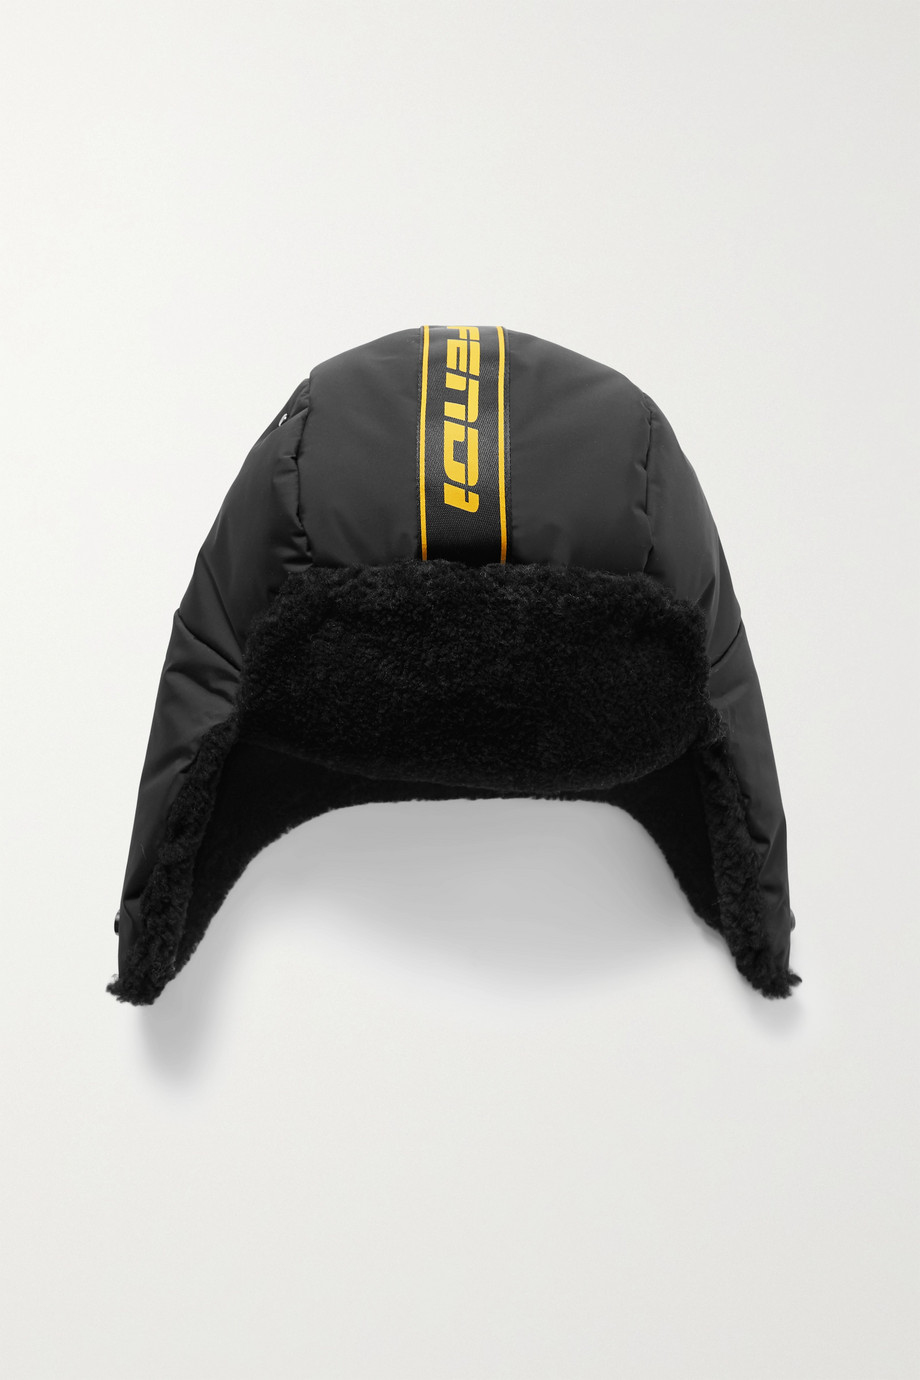 Fendi Shearling-trimmed shell hat